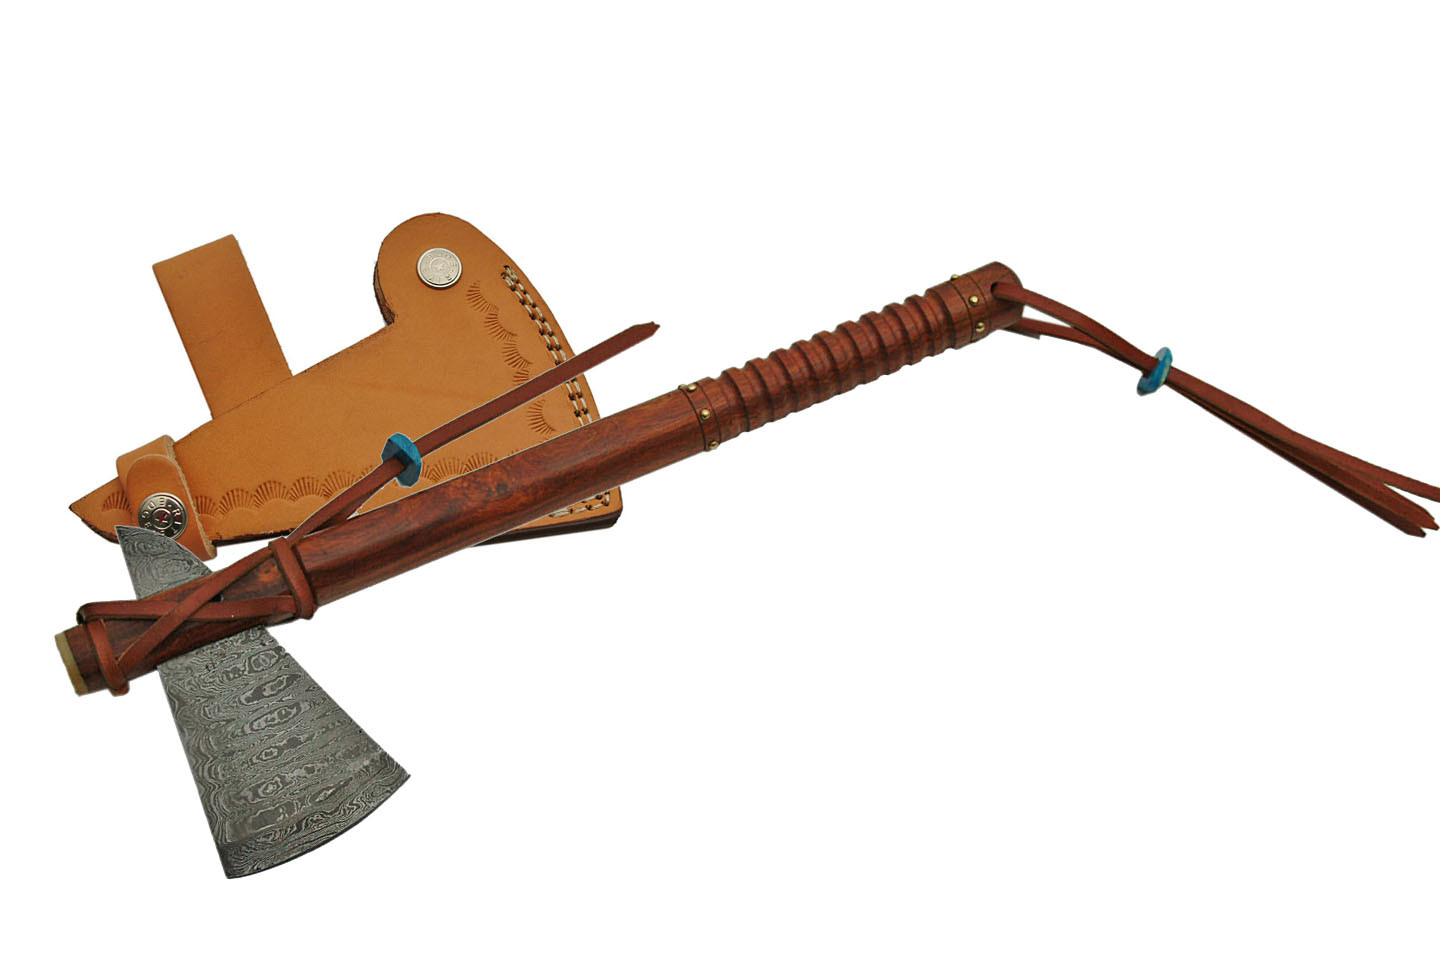 Native American Tomahawk | Damascus Steel Blade Hatchet Hand Ax + Leather Sheath